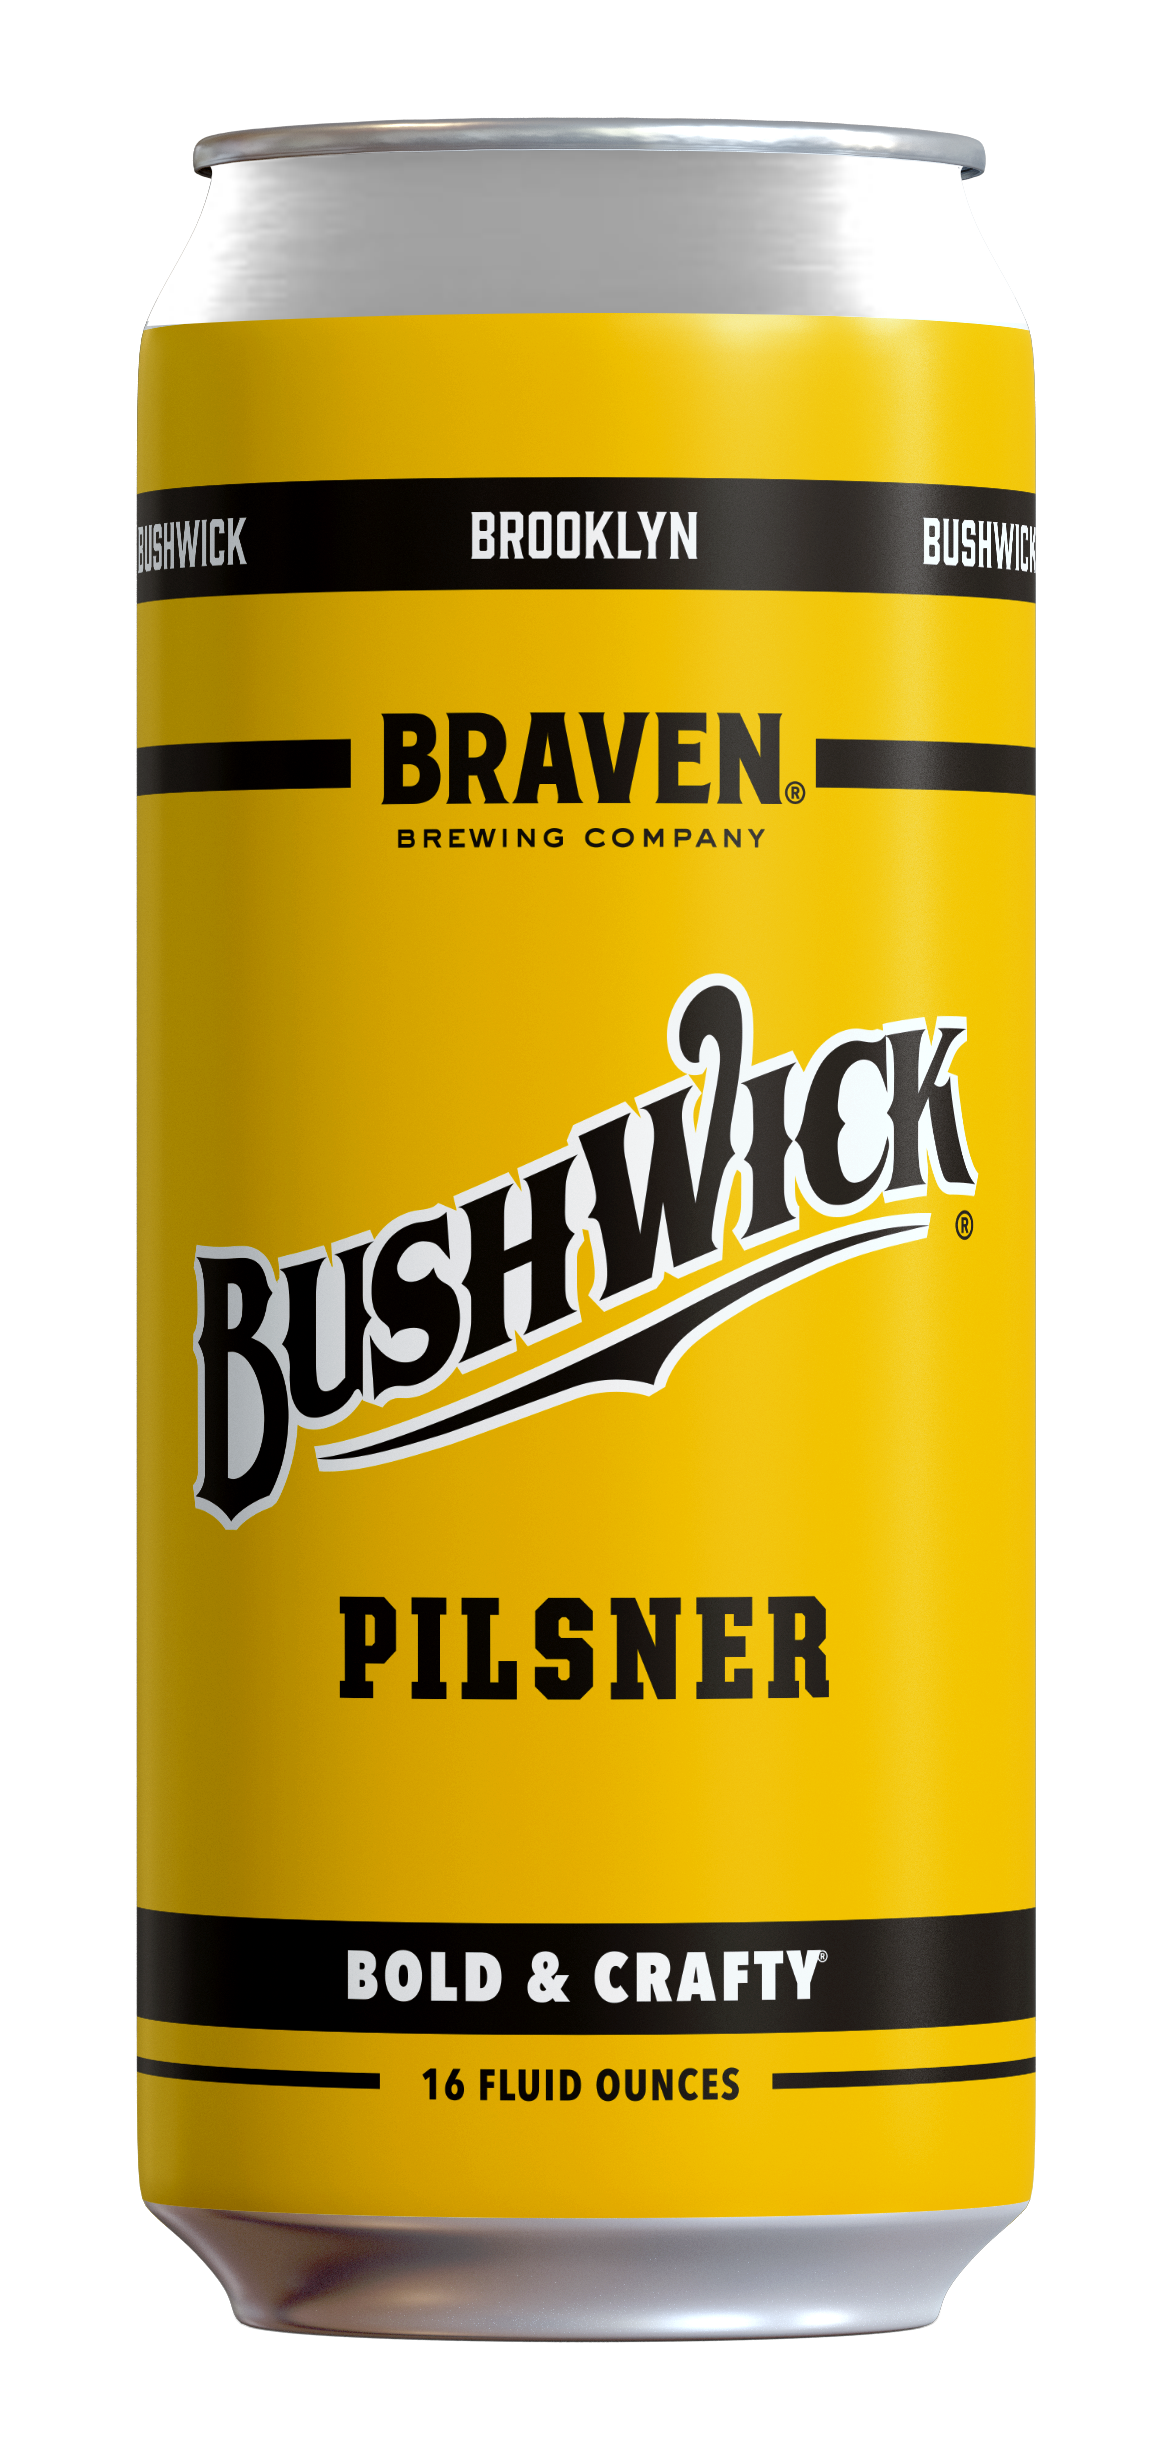 Bushwick Pilsner - Style: PilsnerABV: 5.5%Notes: Based on the pilsners brewed in Bushwick for over 100 years, Bushwick Pilsner is the return of the style that made the neighborhood famous.